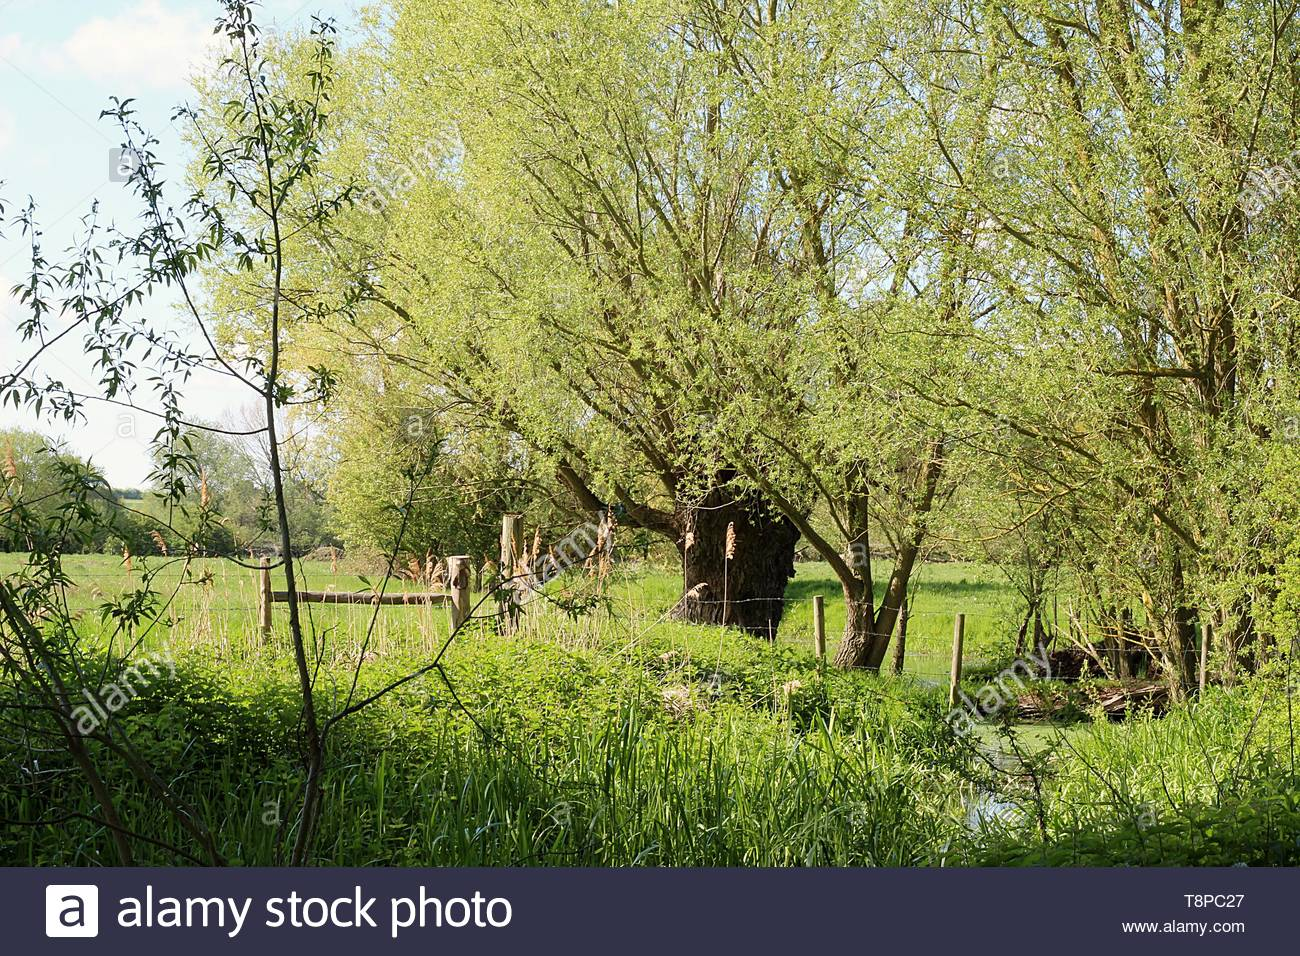 a warm spring day among the trees in rural East Anglia - Stock Image